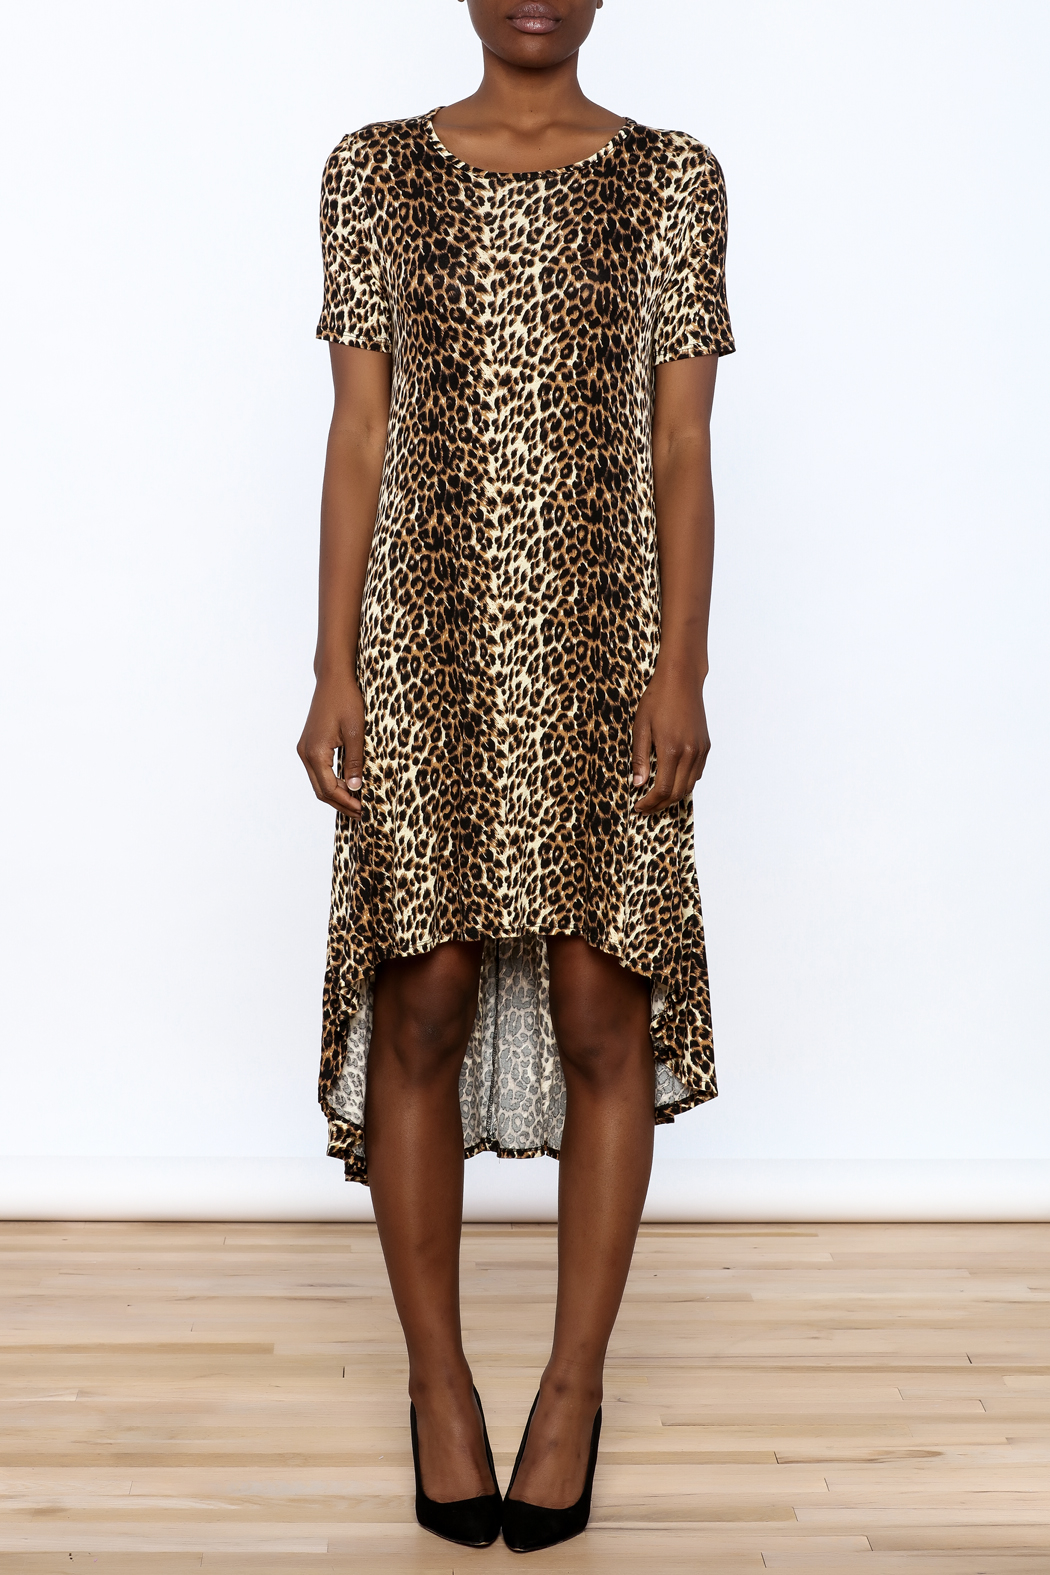 Solo La Fe  Cheetah High Low Dress - Front Cropped Image